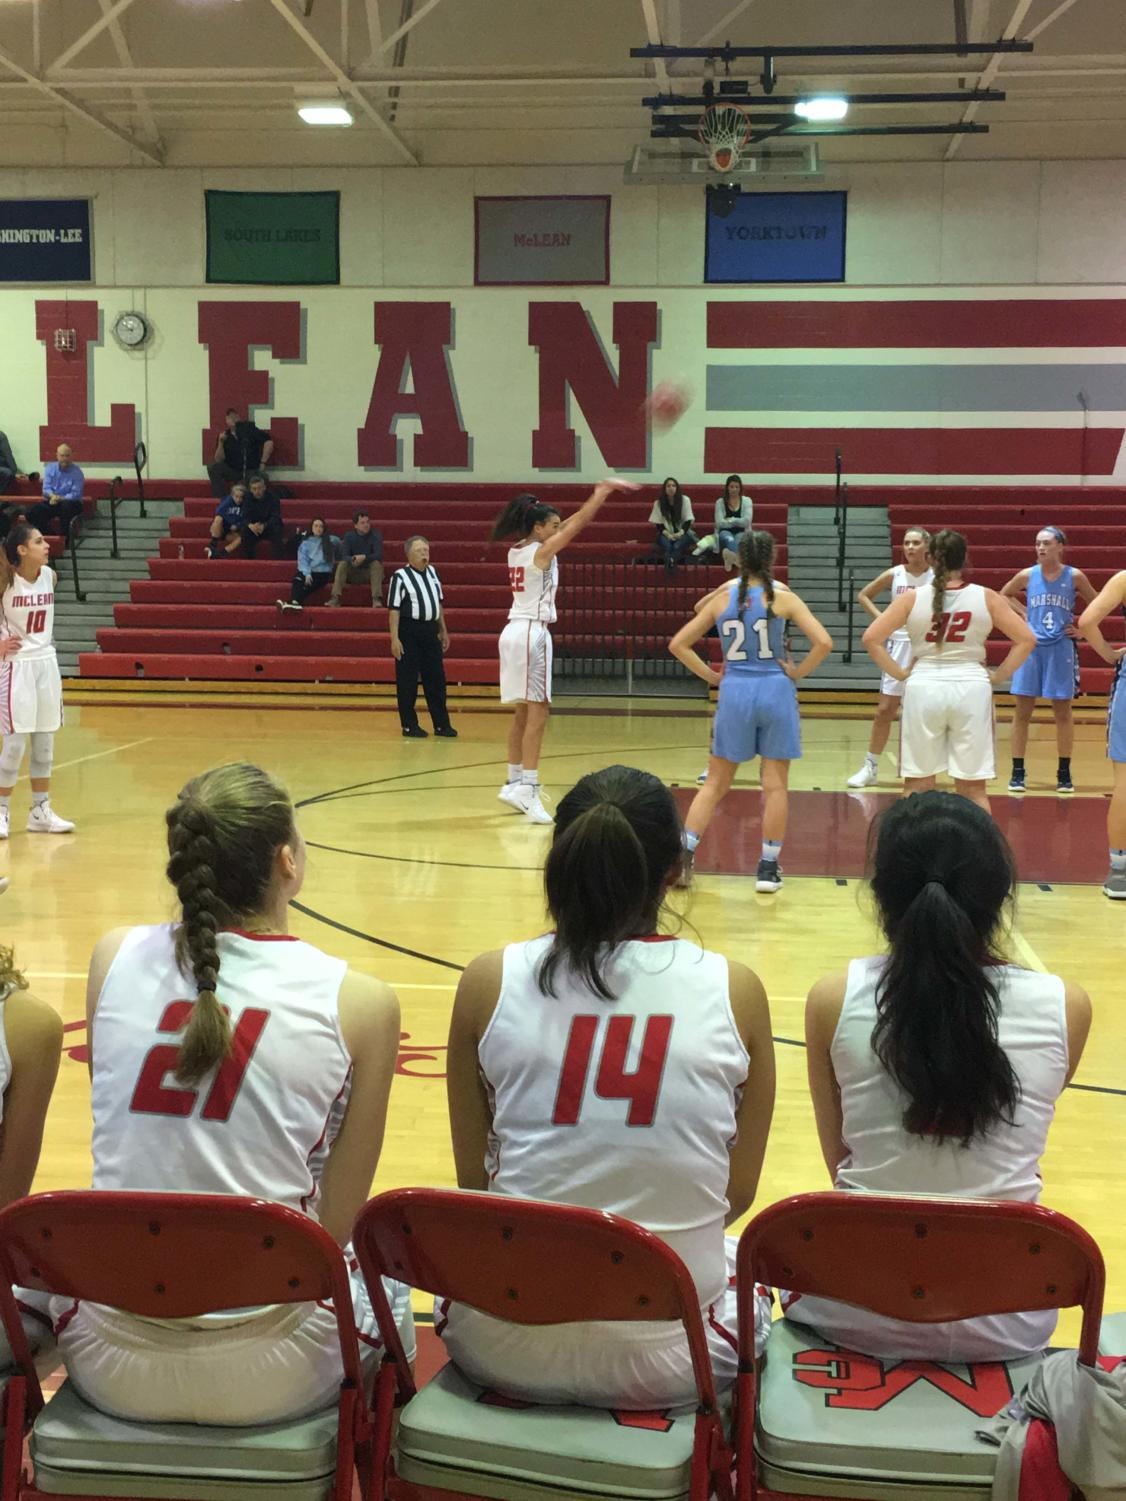 SHOOTING TWO — Mia Fitzgerald shoots a free throw in the home game against Marshall on Dec 4. The Highlanders won the game 73-67. (Photo by Emily Friedman)